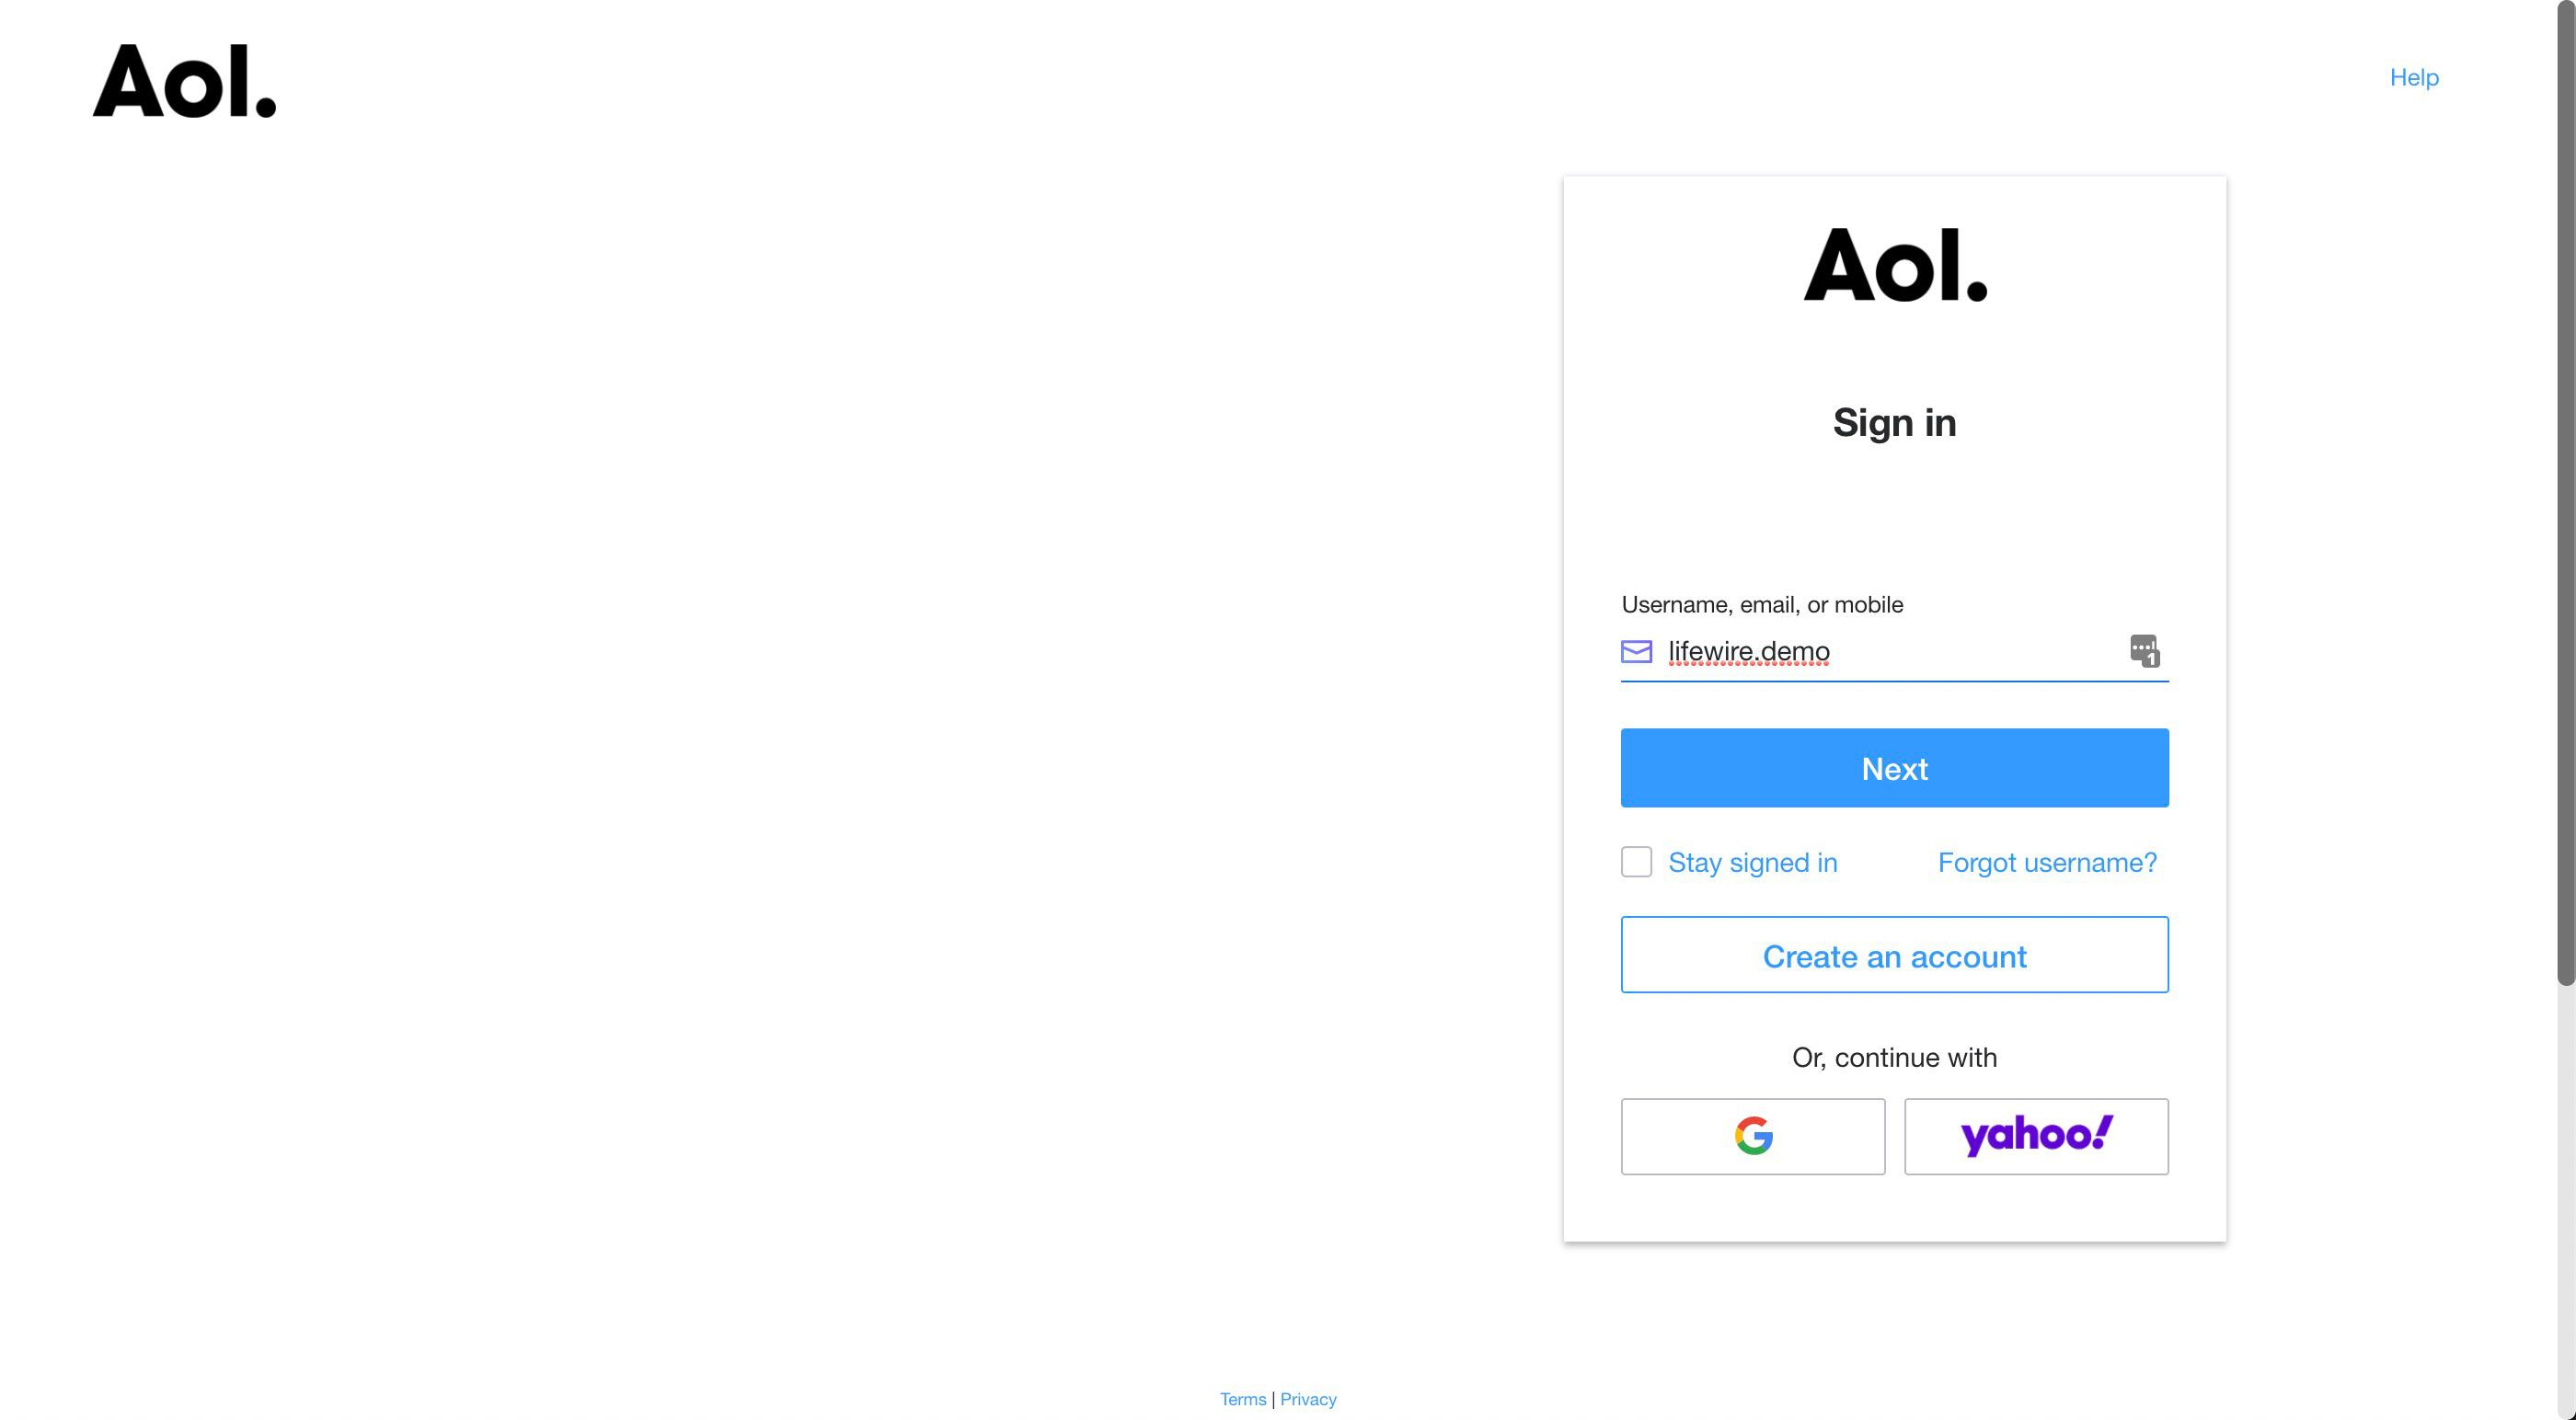 The AOL sign-in screen